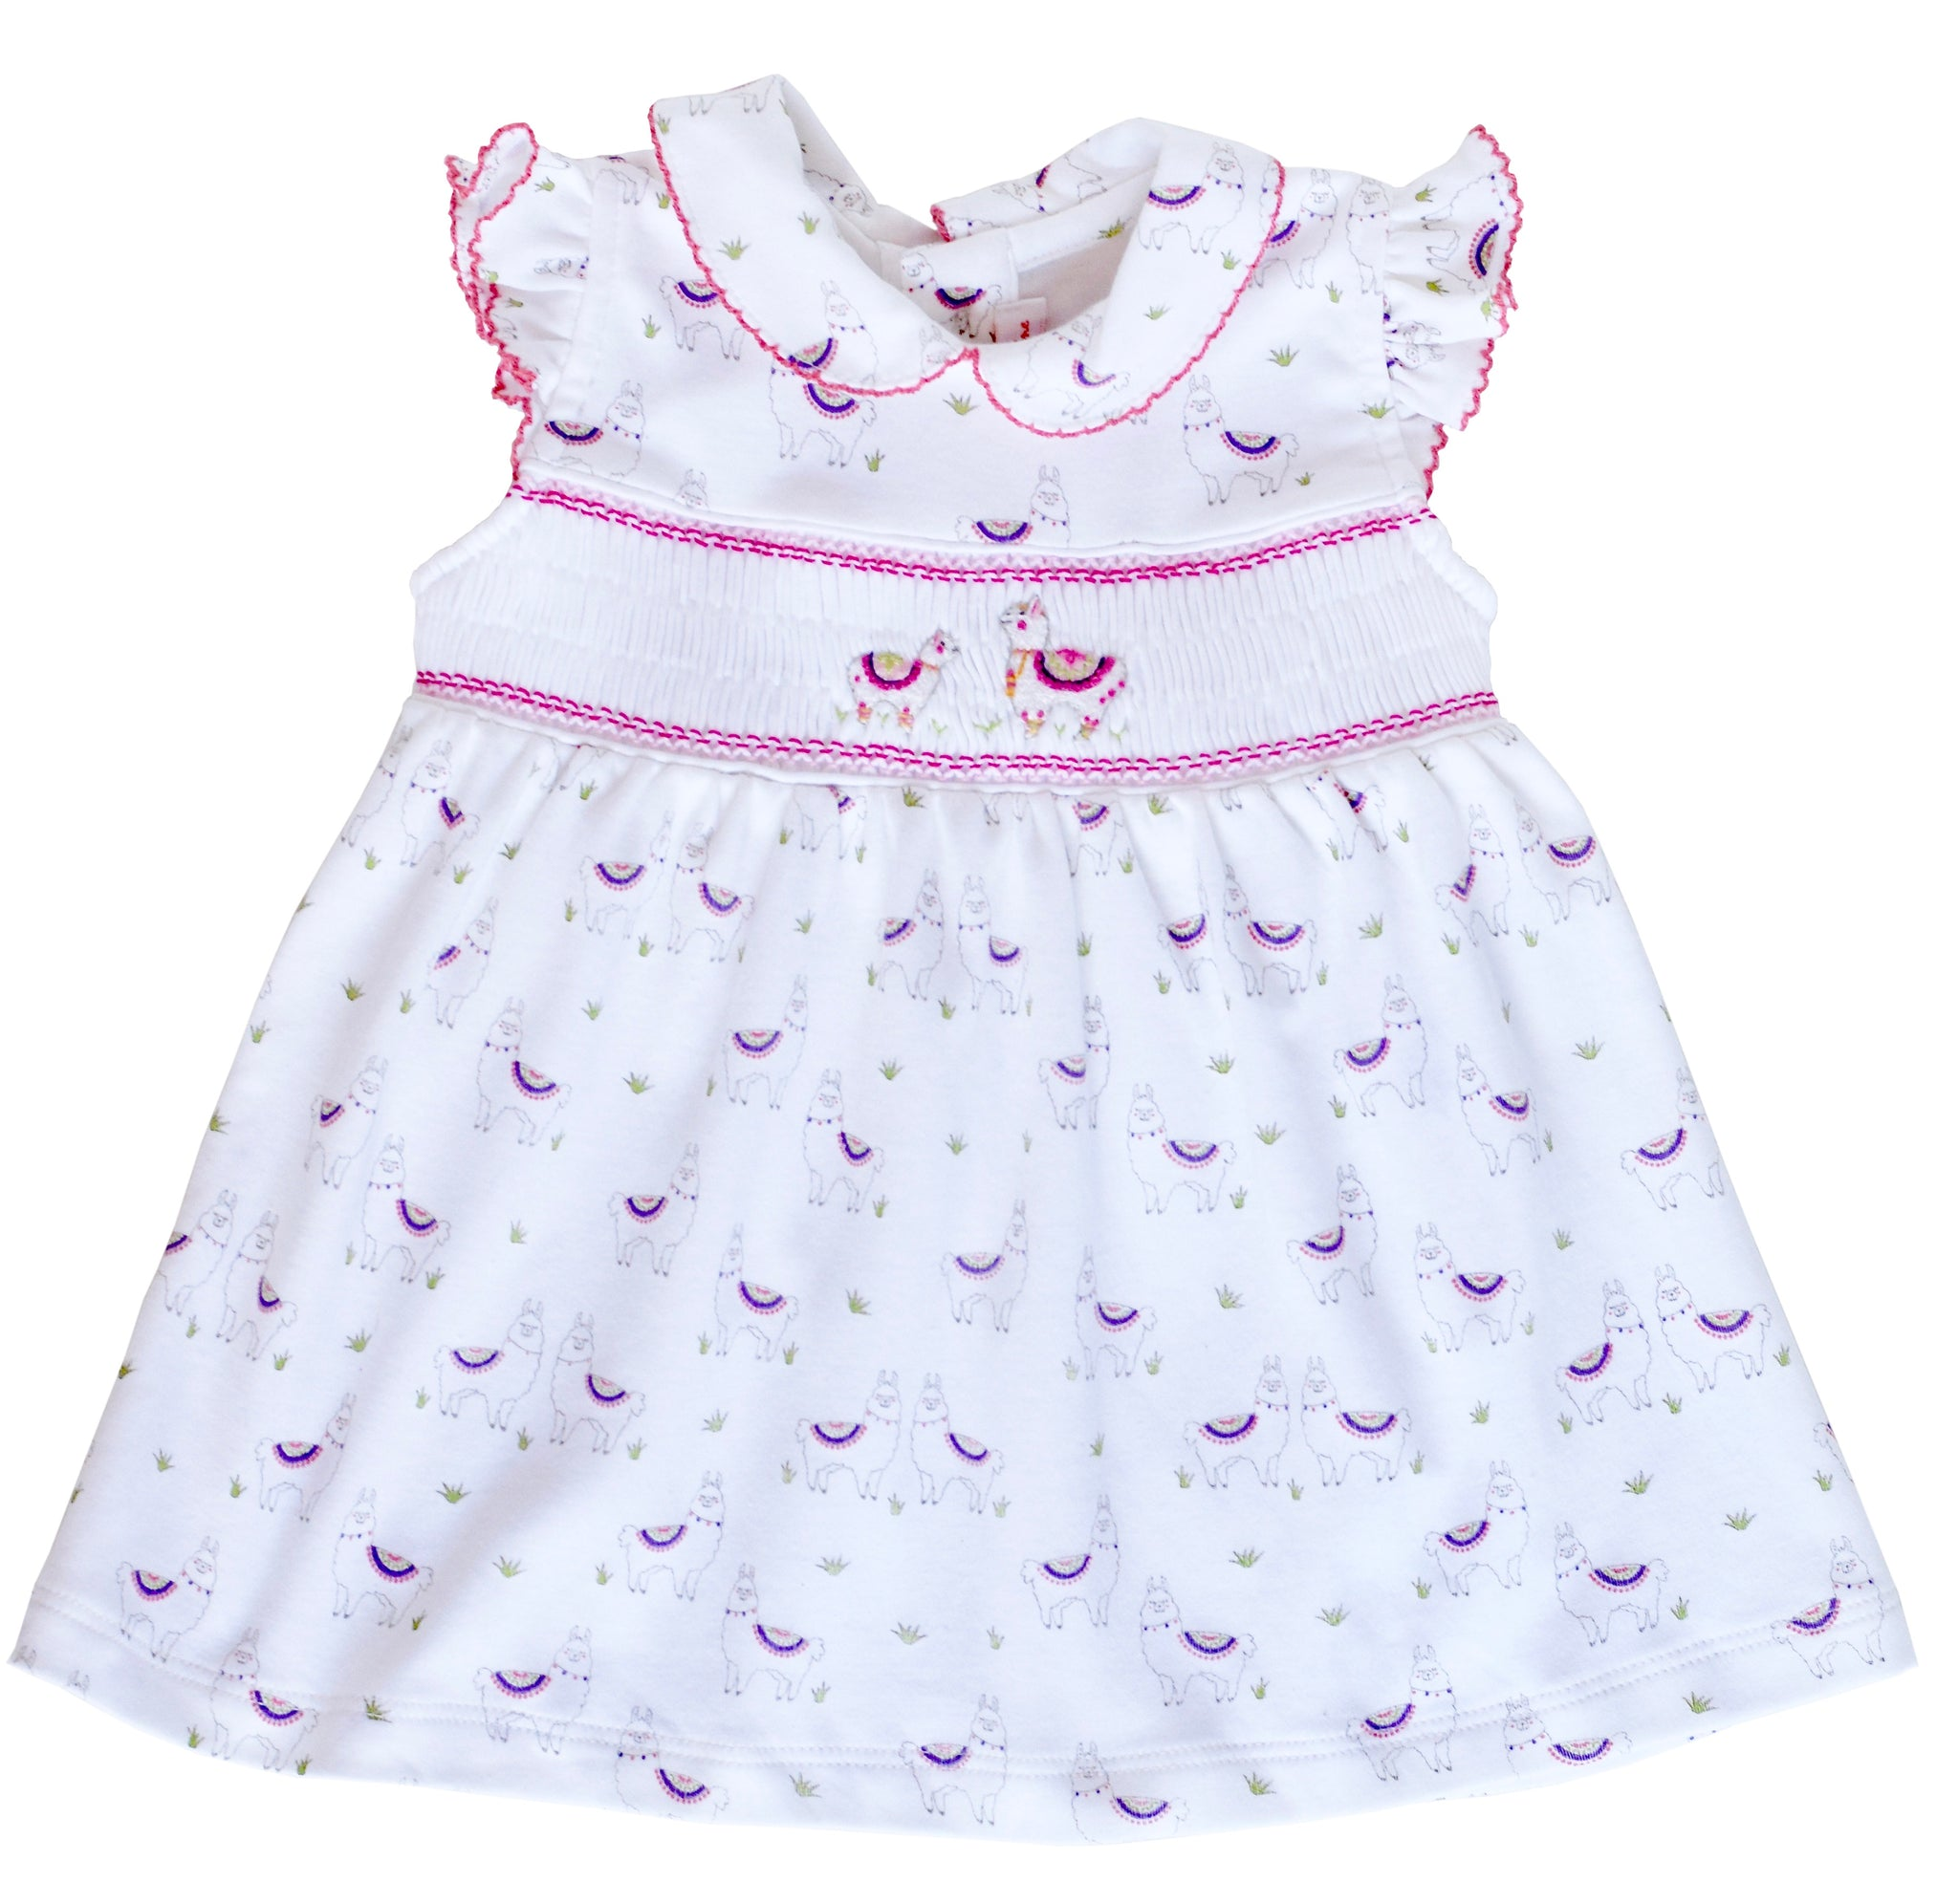 Alex the Alpaca Smocked Dress